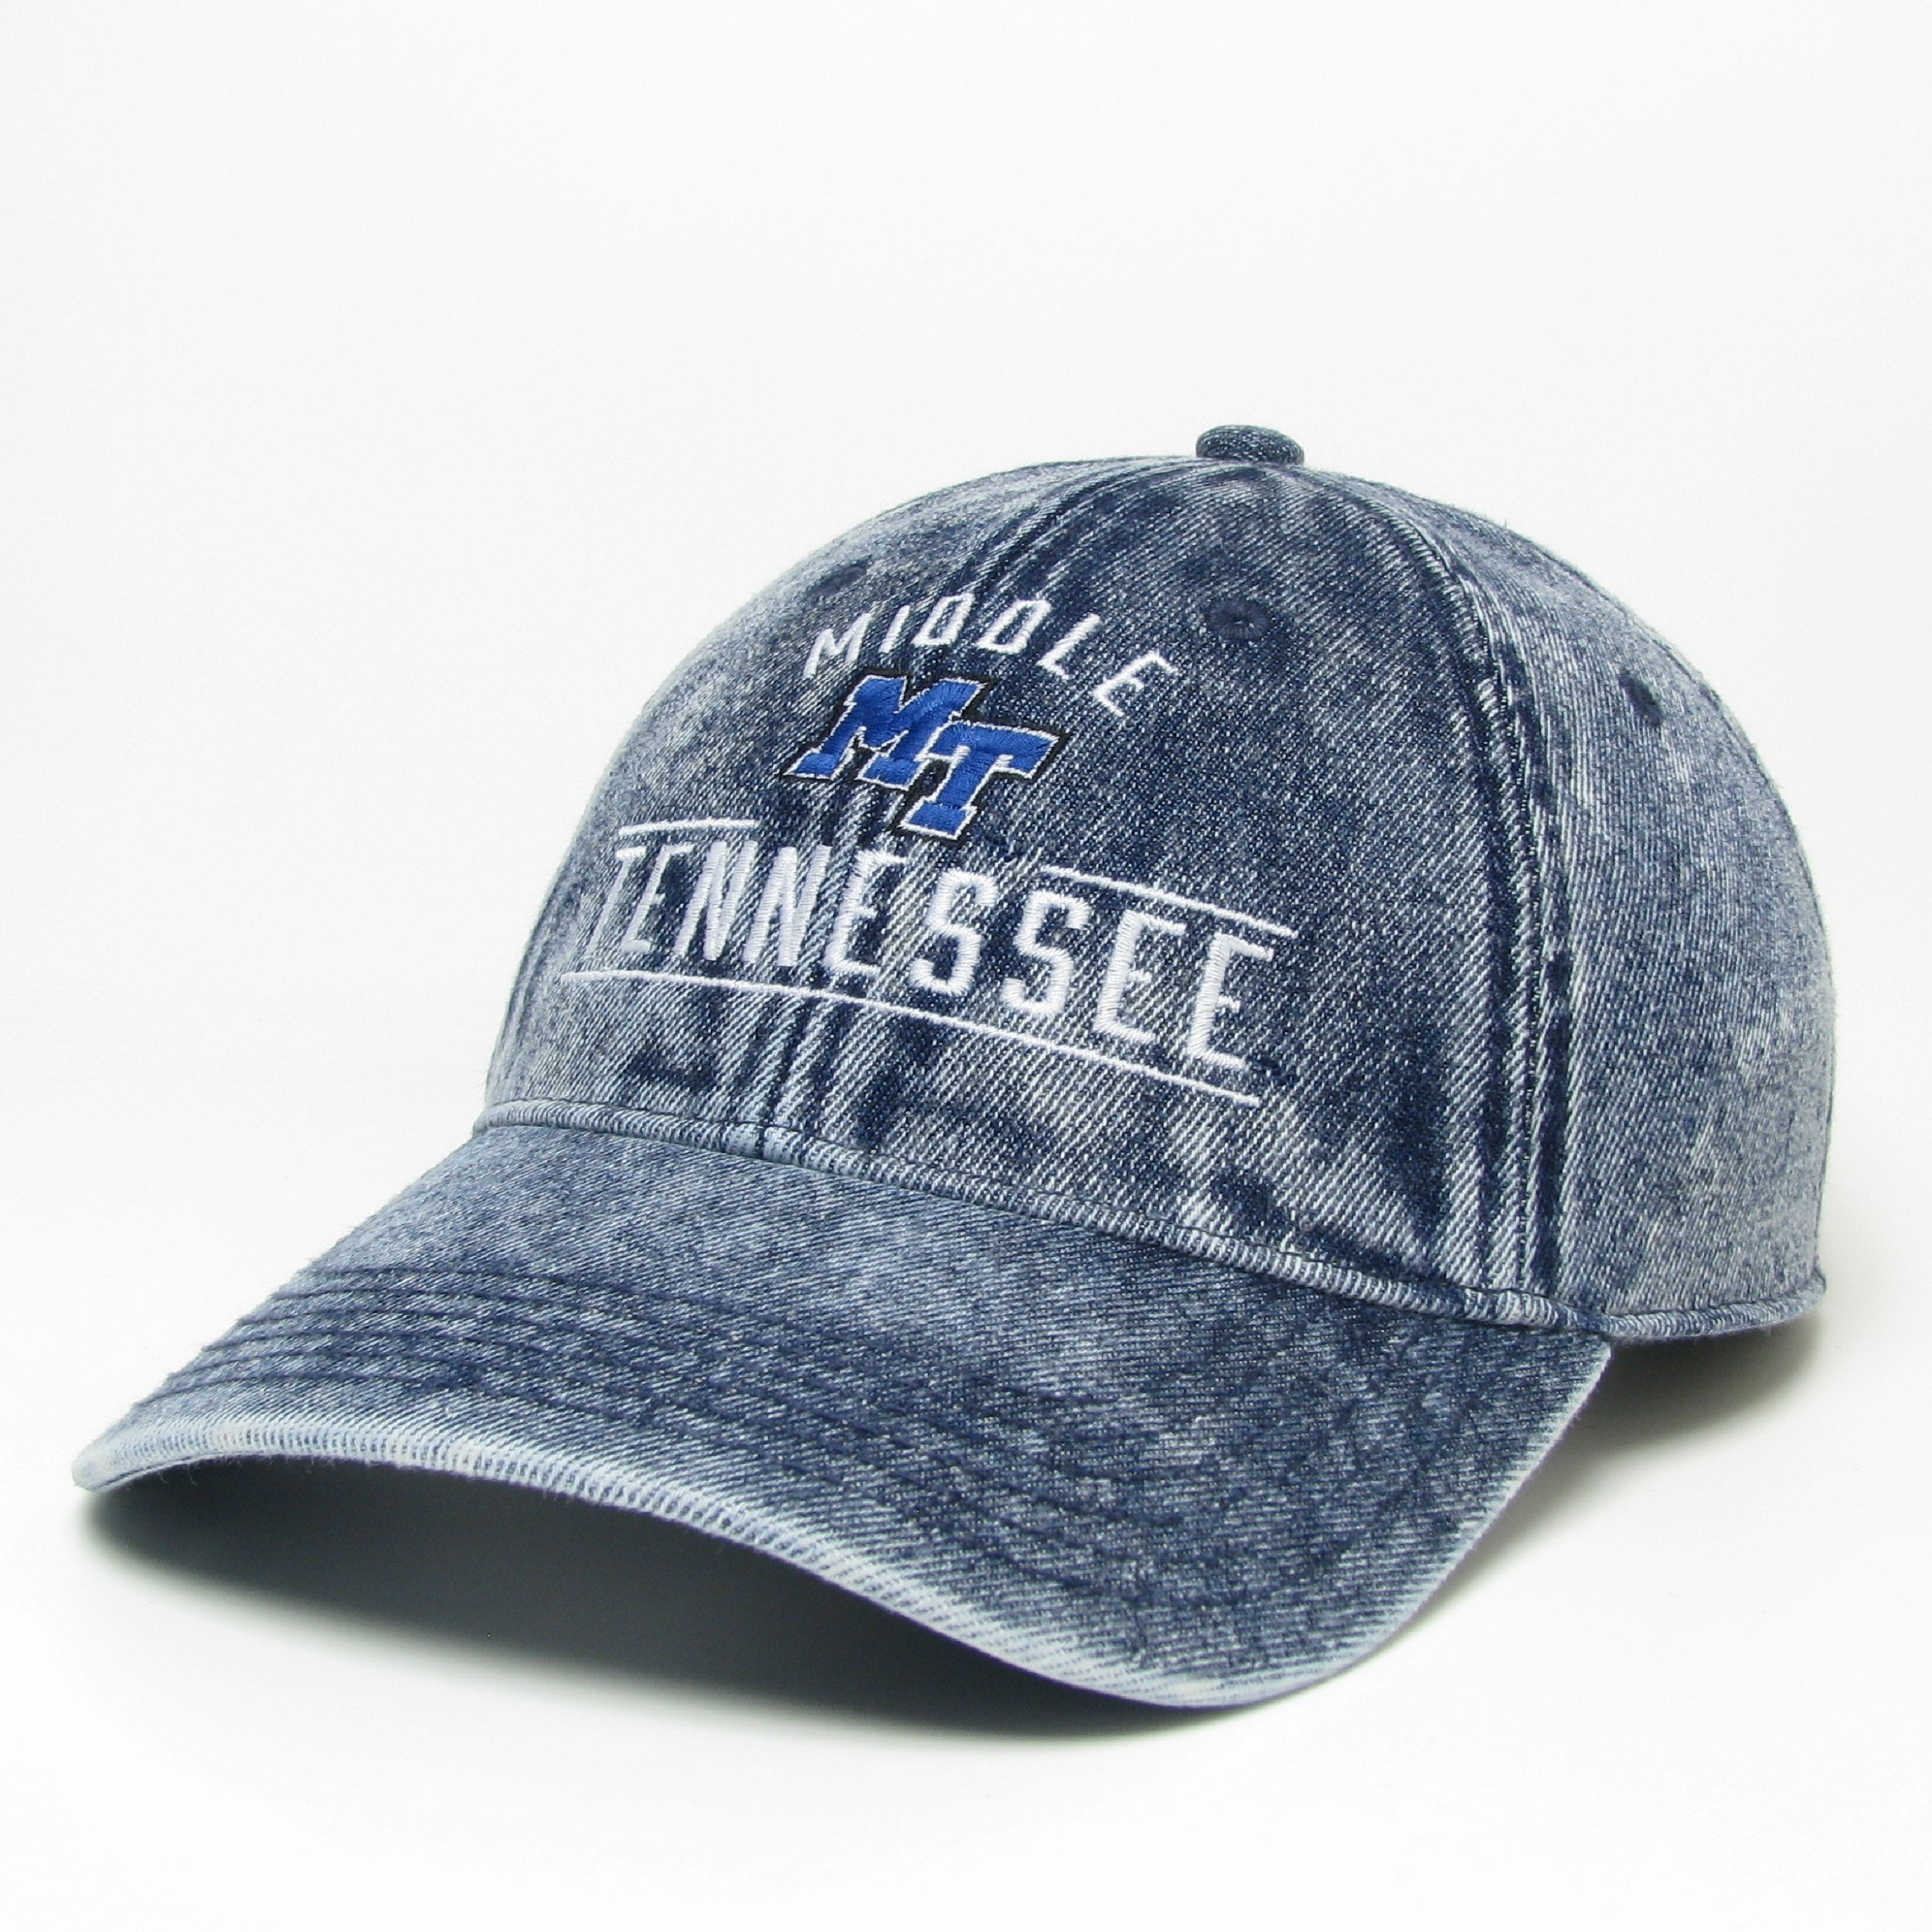 Middle Tennessee Stone Washed Denim Hat